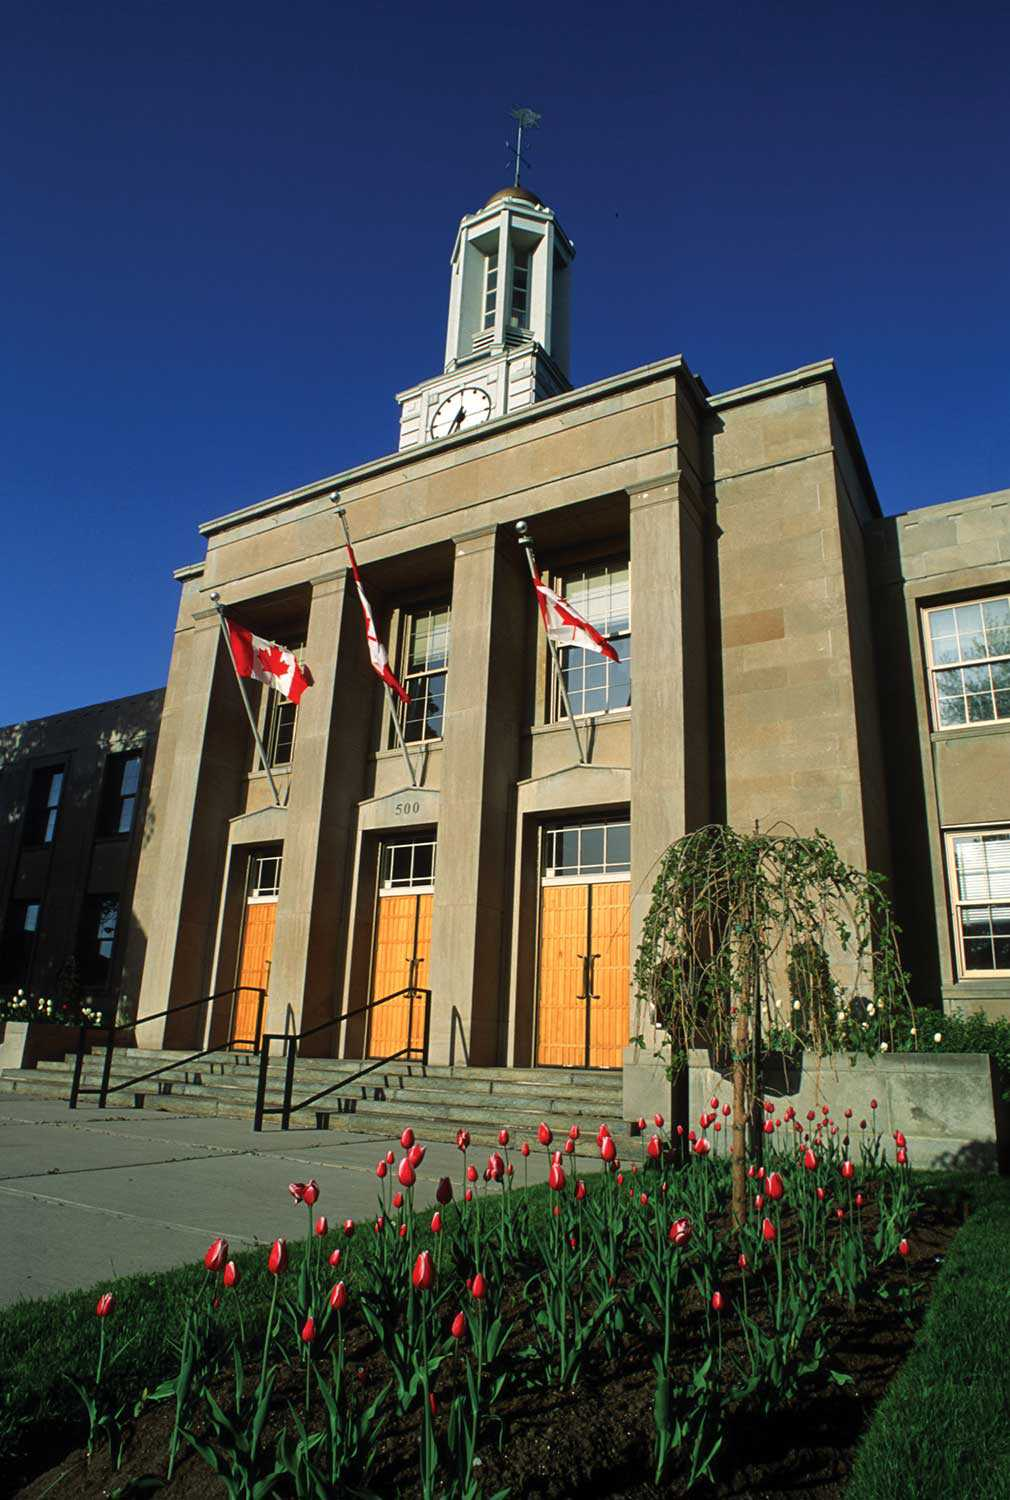 Peterborough City Hall, built in 1951 and inspired by the City Beautiful movement (Photo: Heritage Preservation Office, Arts, Culture and Heritage Division, City of Peterborough)